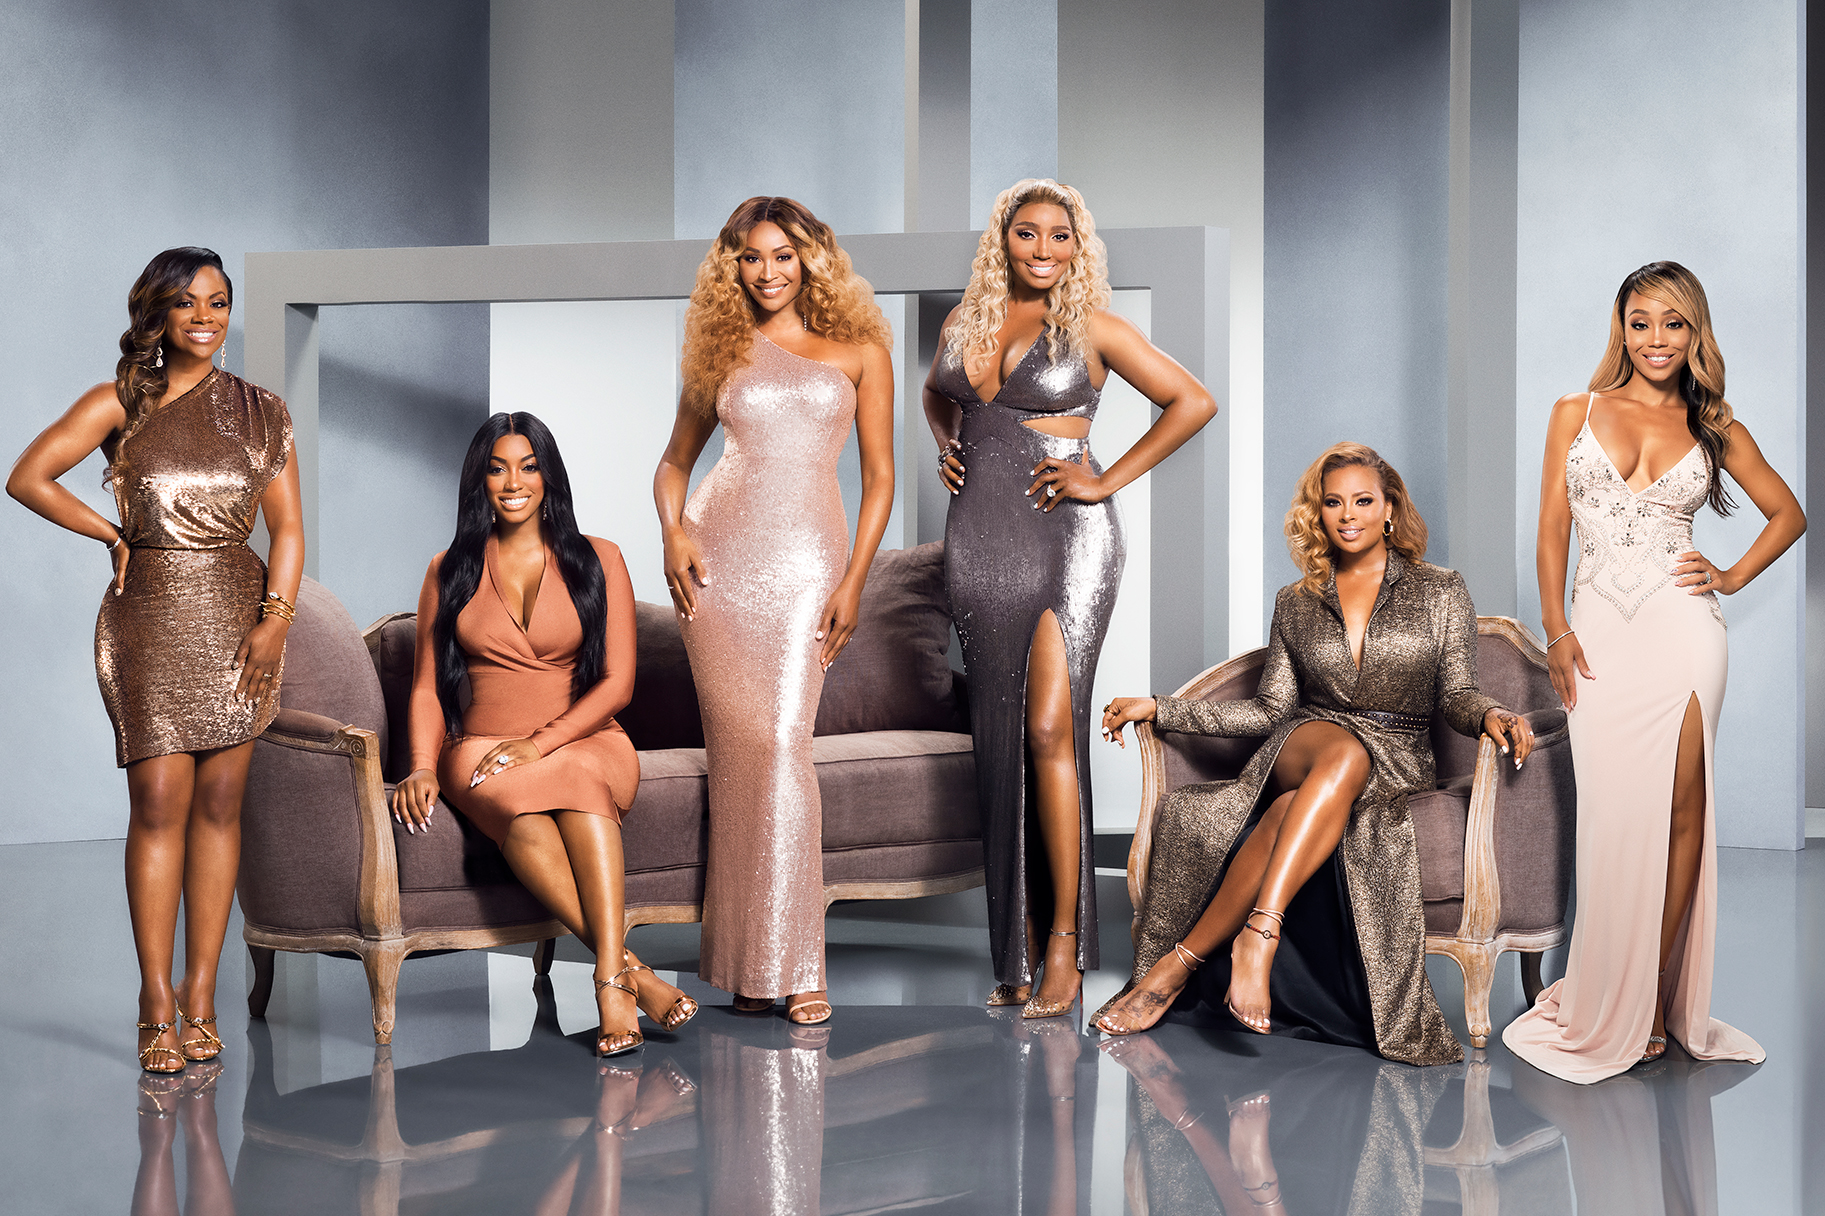 RHOA Reunion Dresses